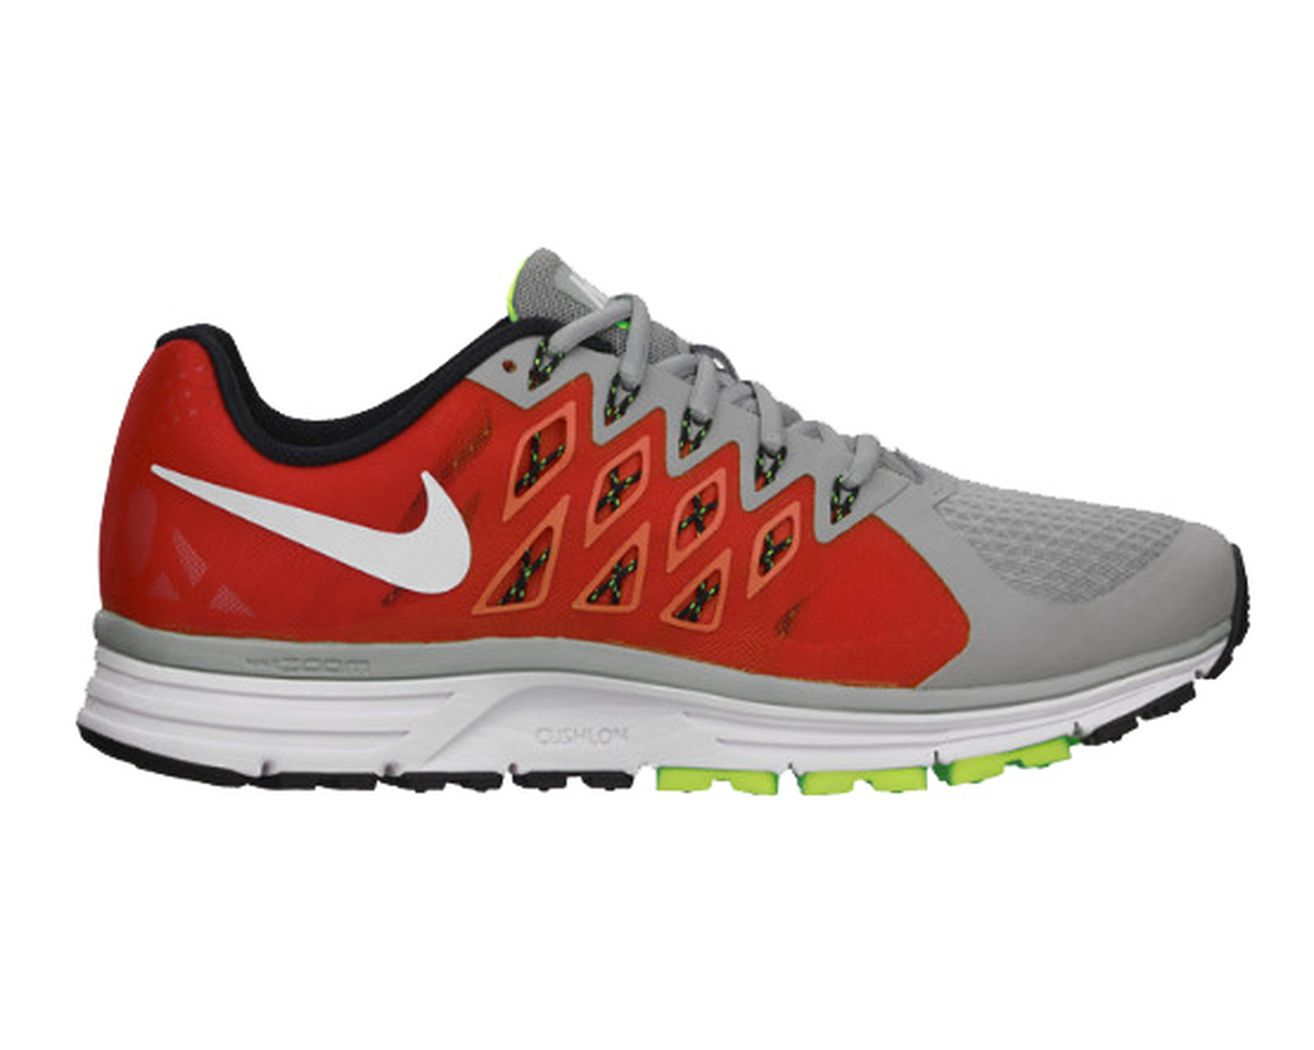 Mens Nike Air Zoom Vomero 9 Running Shoe at Road Runner Sports